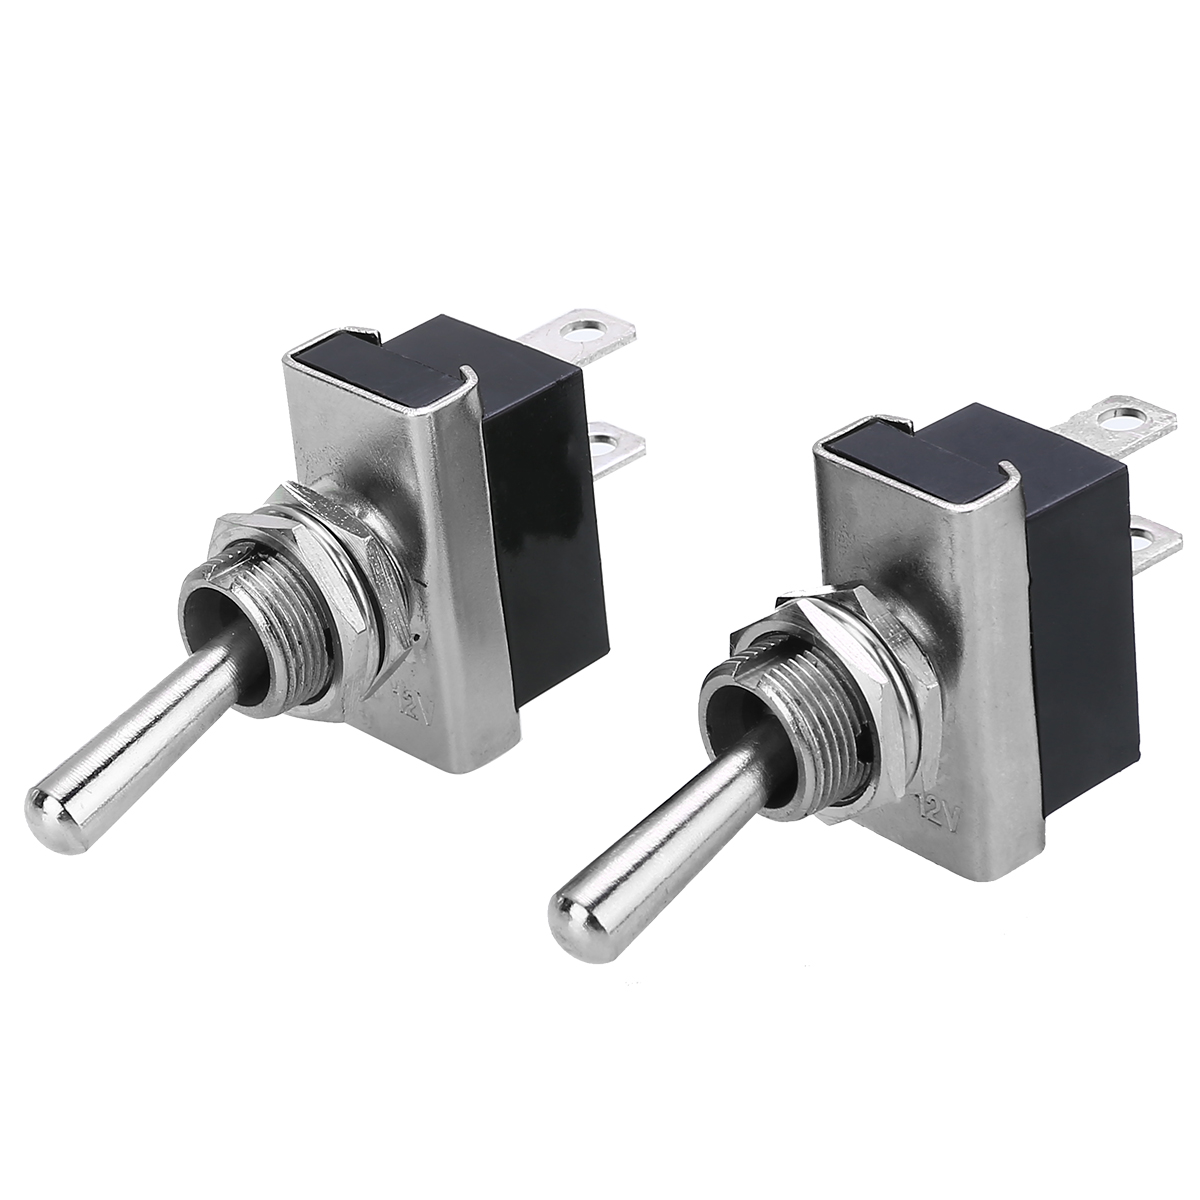 New Pair On Off Heavy Duty Flick Switches 12V 25A Waterproof Toggle Switch Kits for Boat Marine